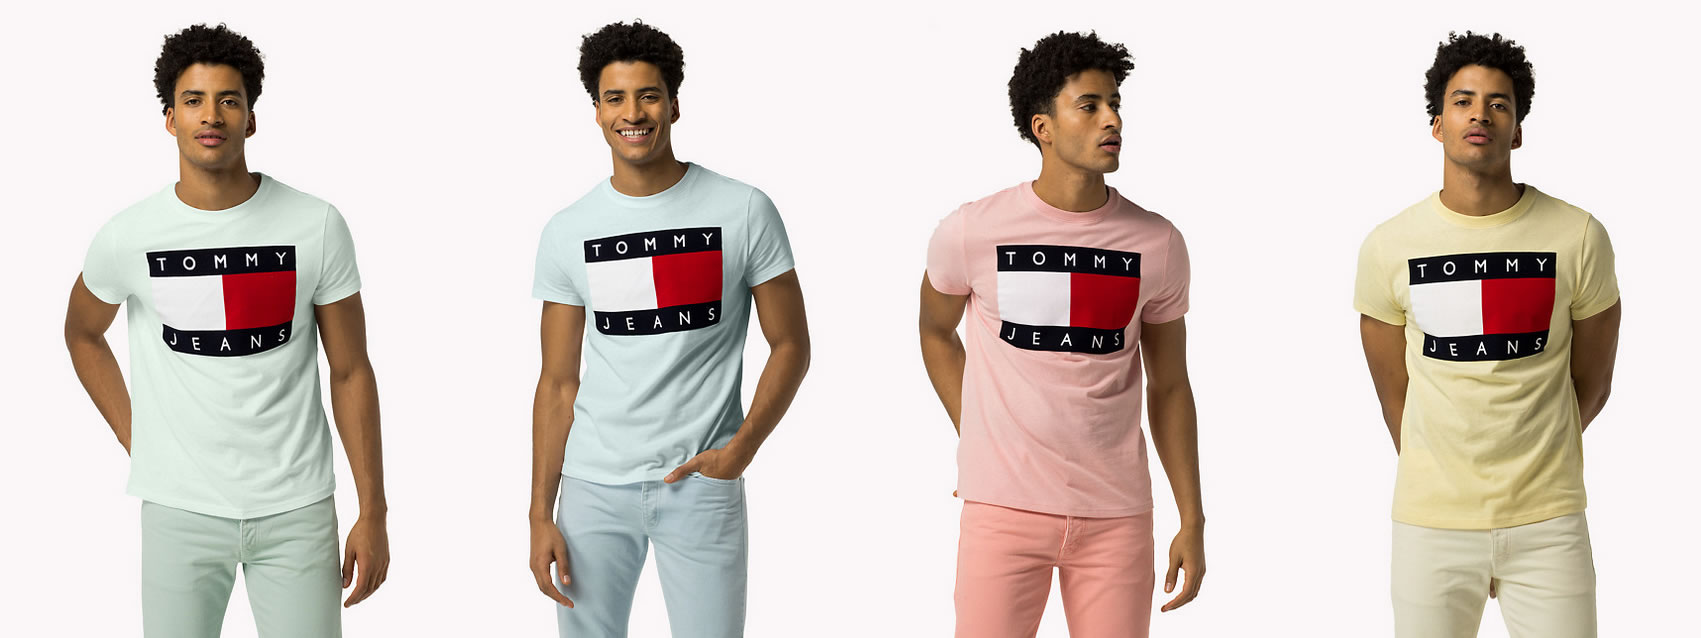 bb0e4b498a8 Tommy Hilfiger - Tommy Jeans 90 s Style For Summer 2017